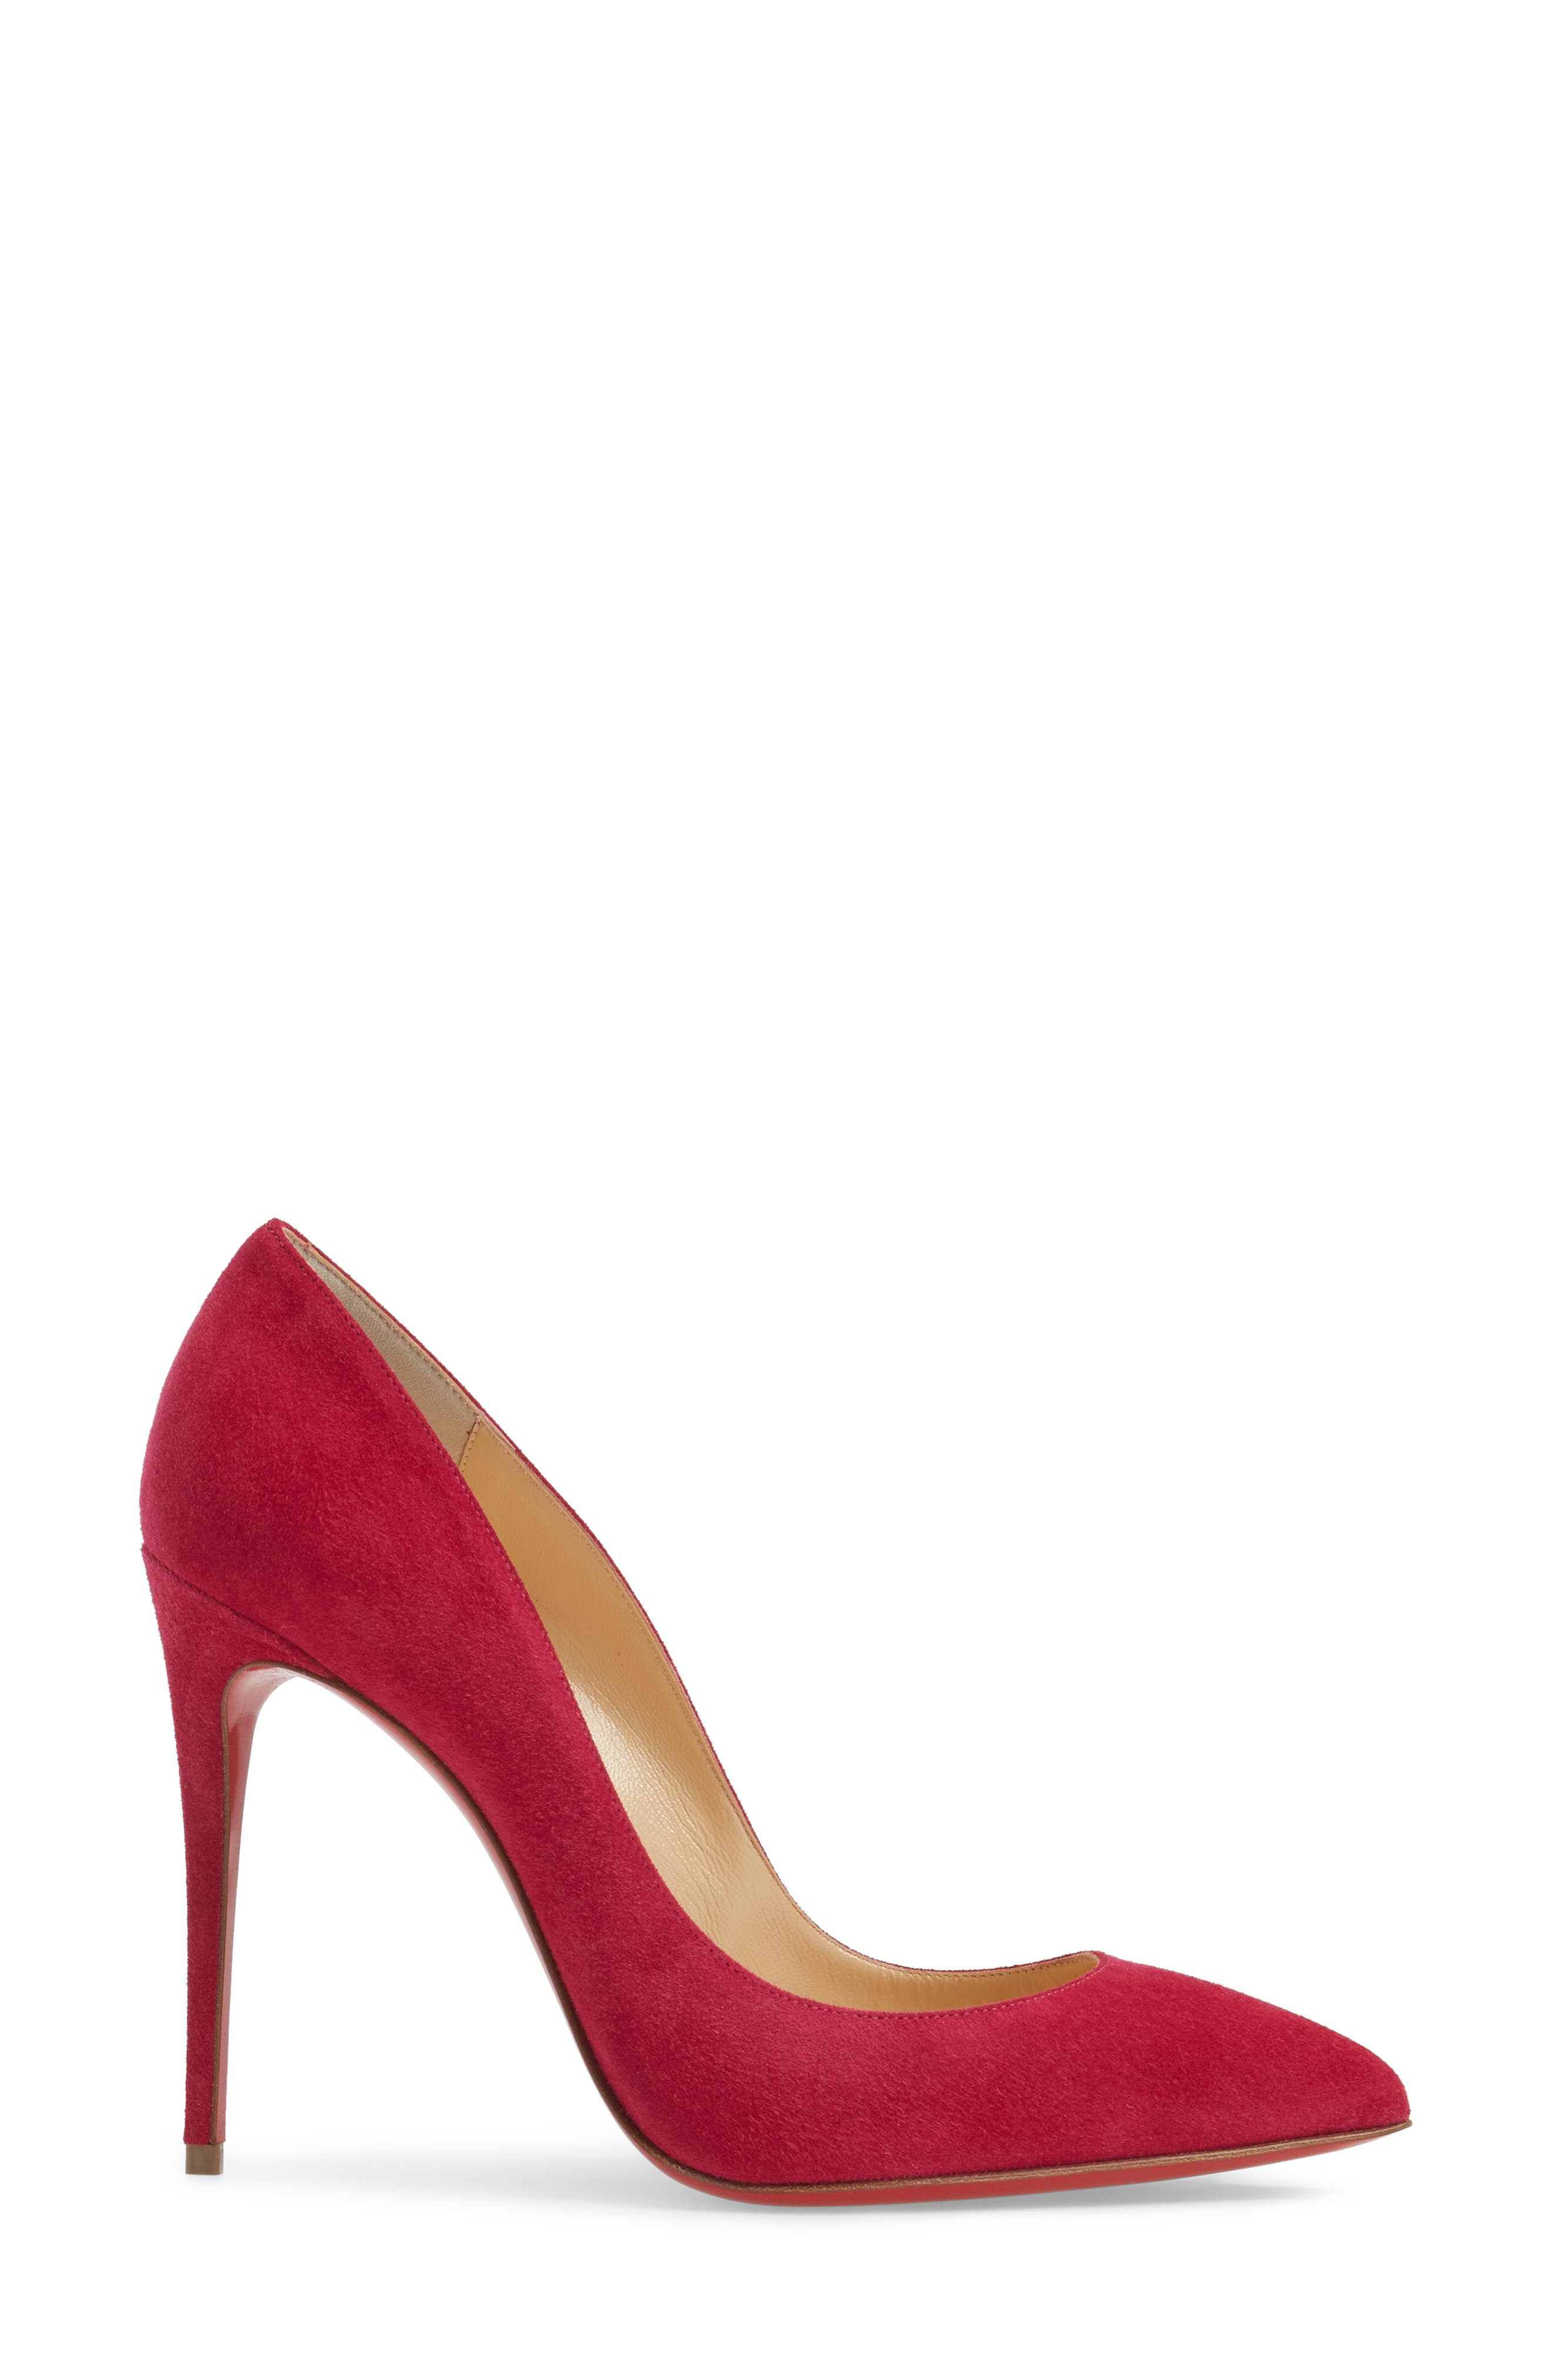 Pigalle Follies Pointy Toe Pump,                             Alternate thumbnail 3, color,                             Rosa Suede